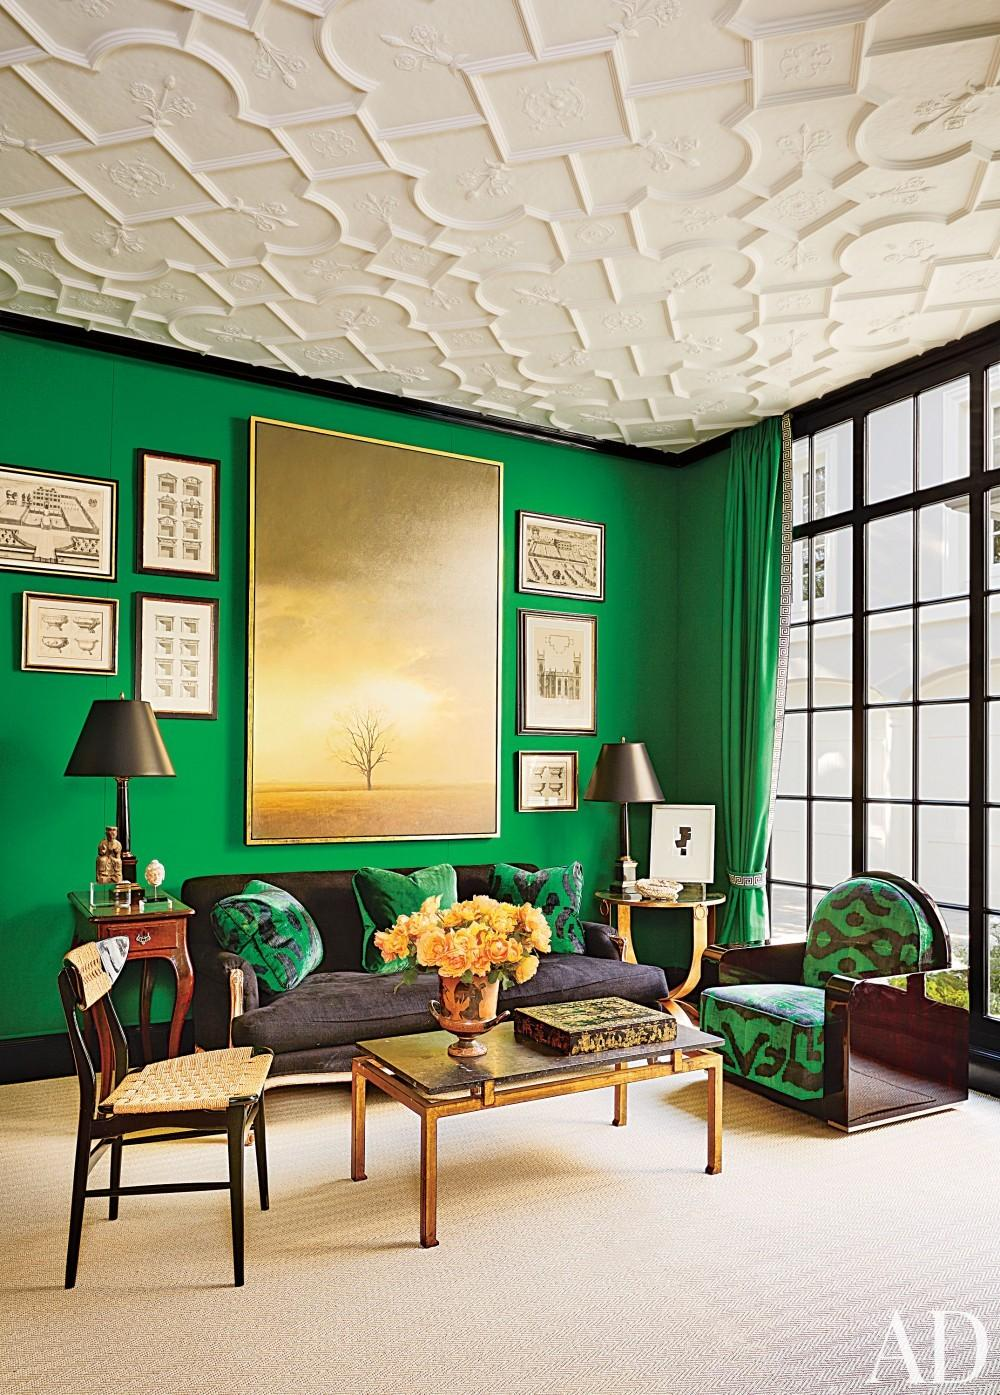 The Green Room Decoration Ideas